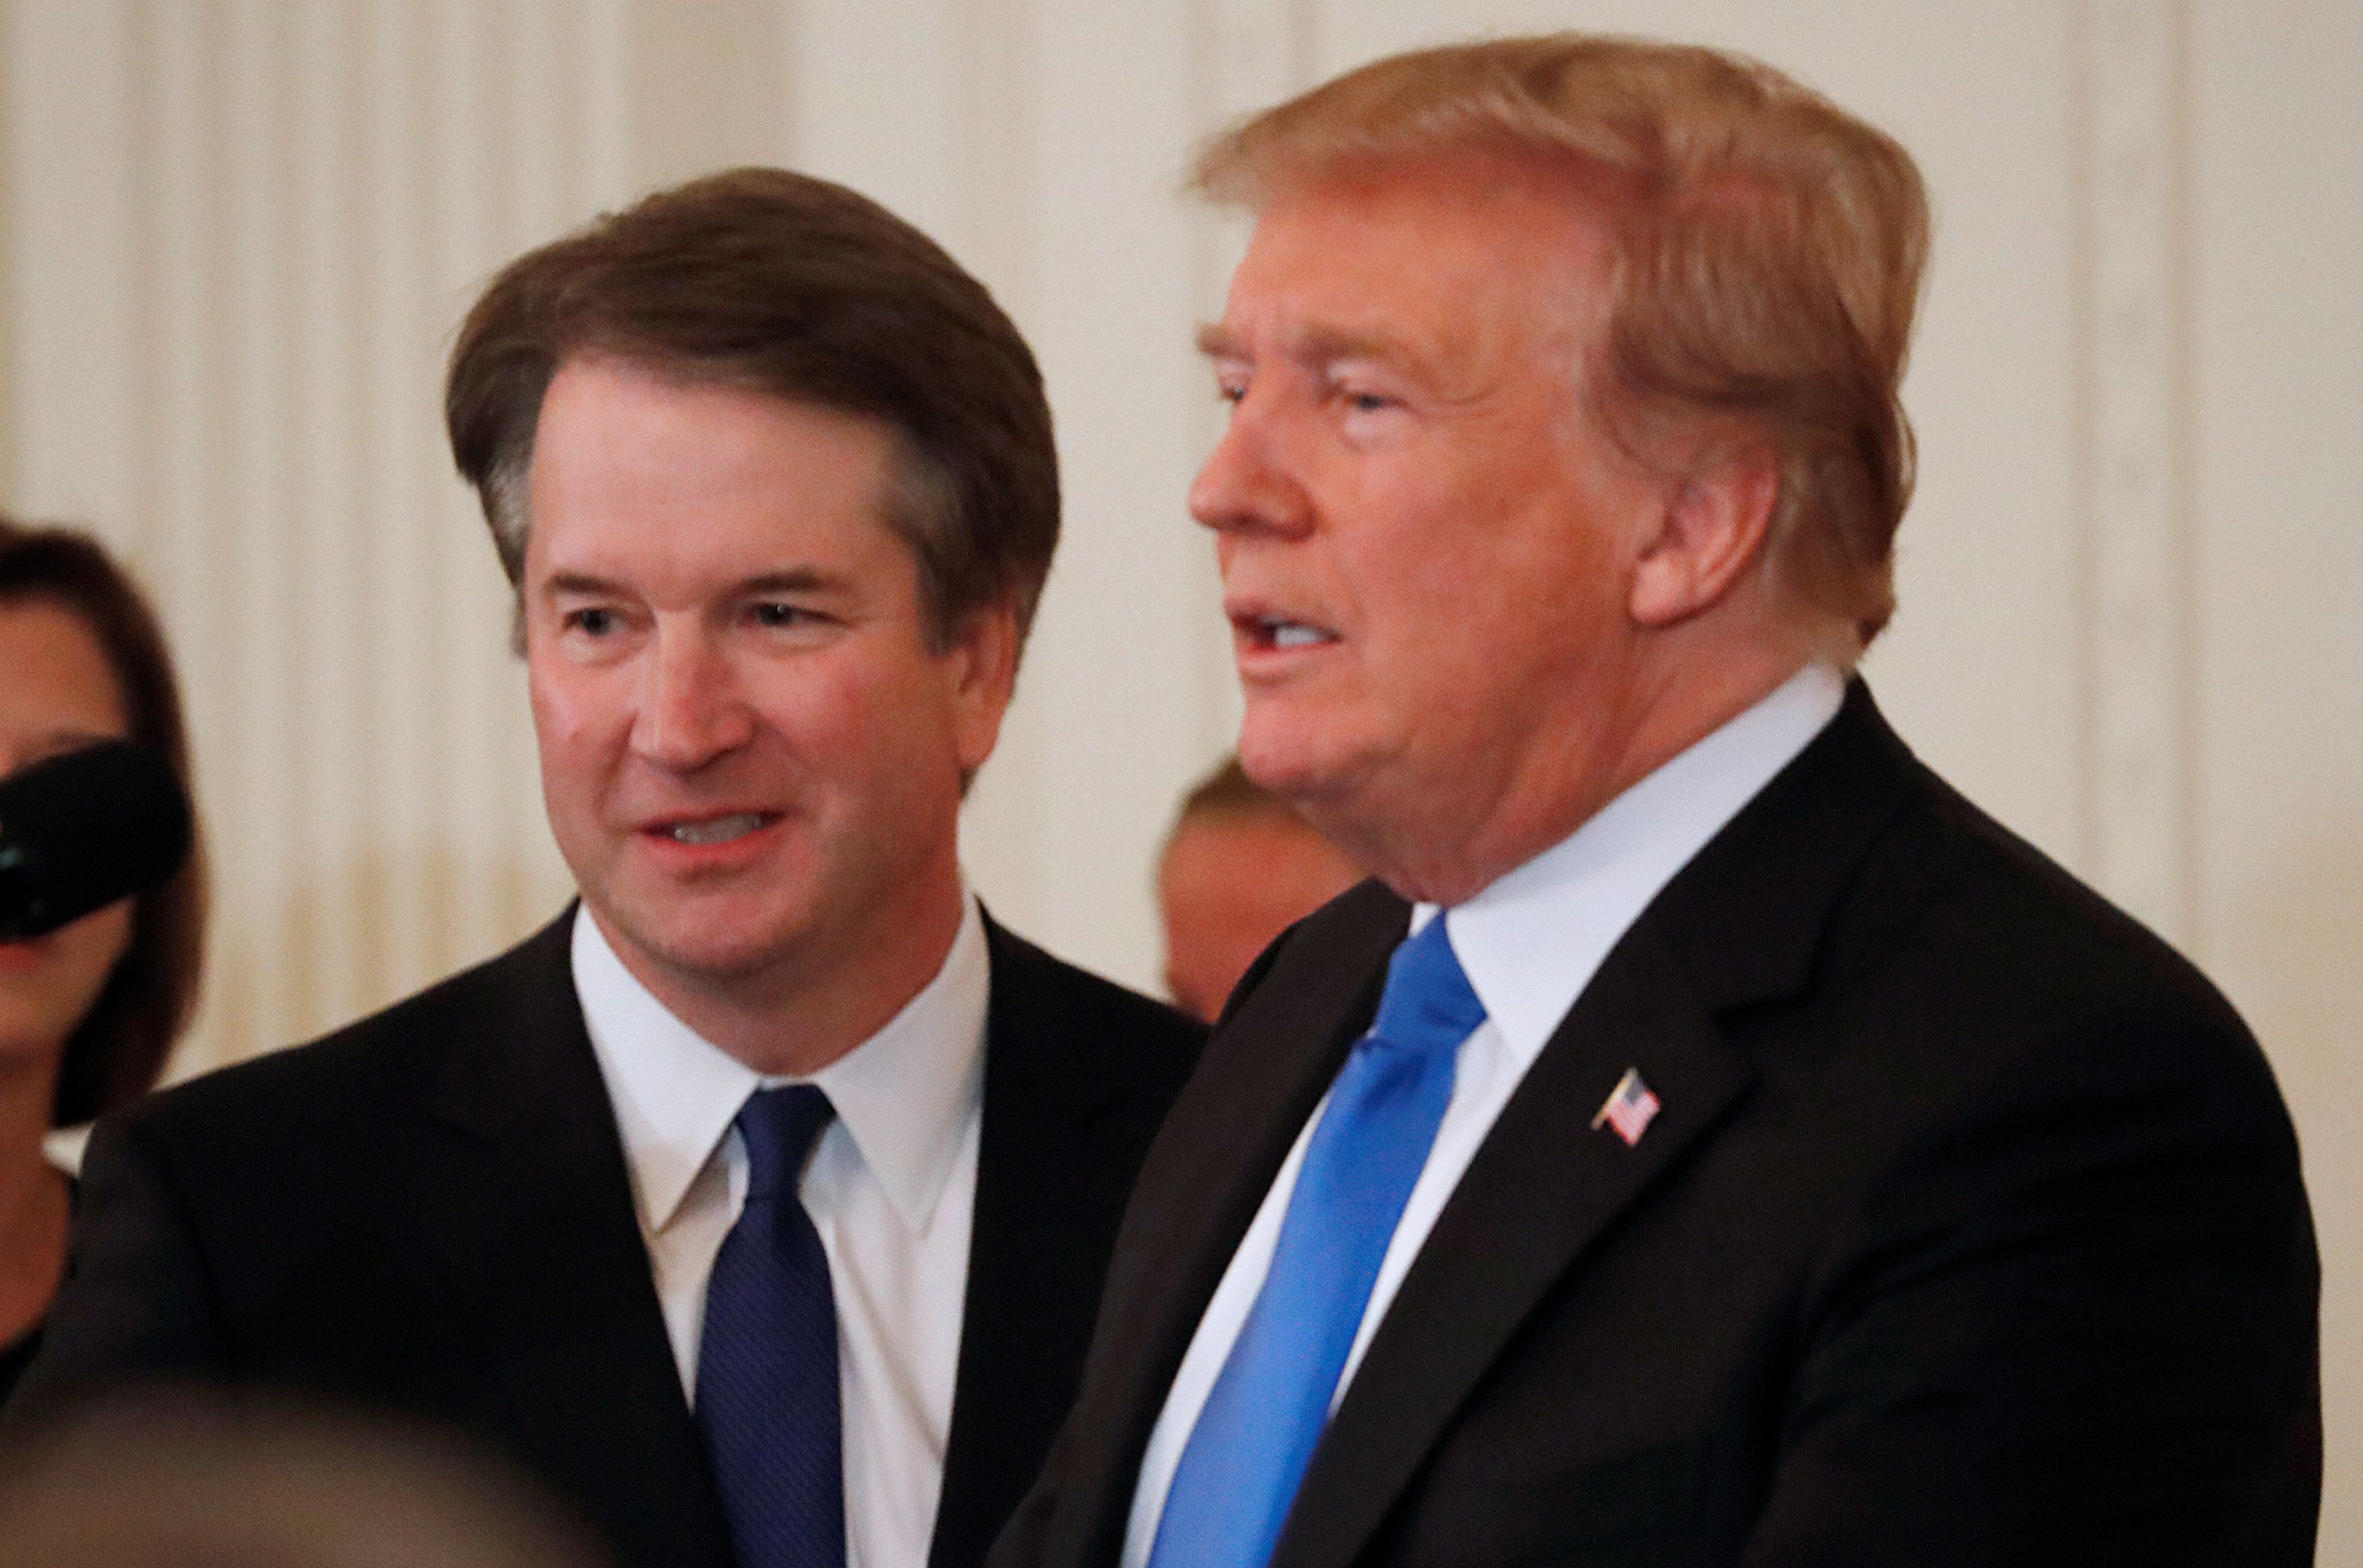 U.S. President Donald Trump and his nominee for the U.S. Supreme Court Judge Brett Kavanaugh are seen in the East Room of the White House in Washington, U.S., July 9, 2018.  REUTERS/Jim Bourg